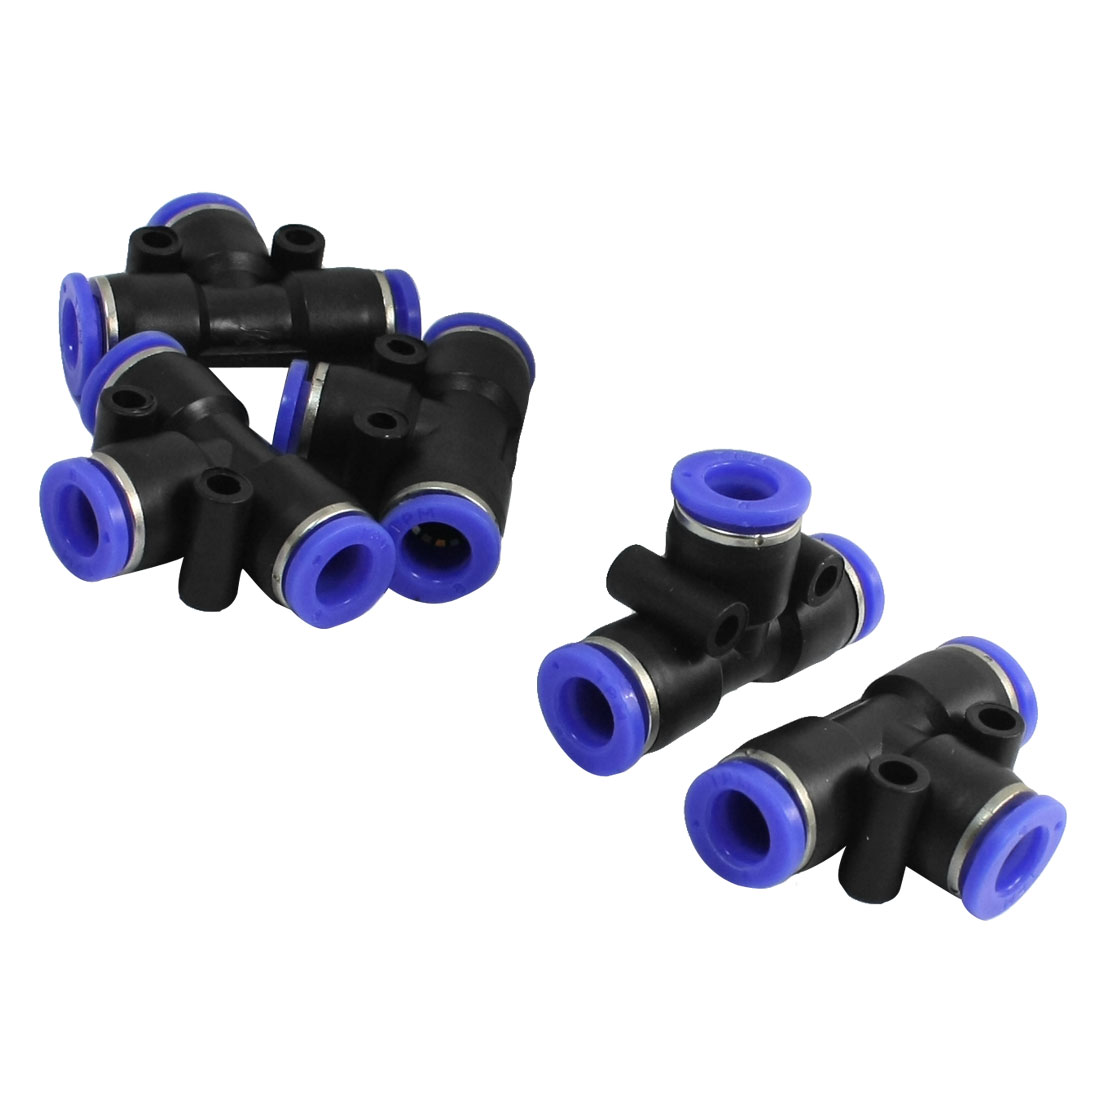 5pcs T Style Pneumatic One Touch Fittings Quick Connectors 8mm to 8mm